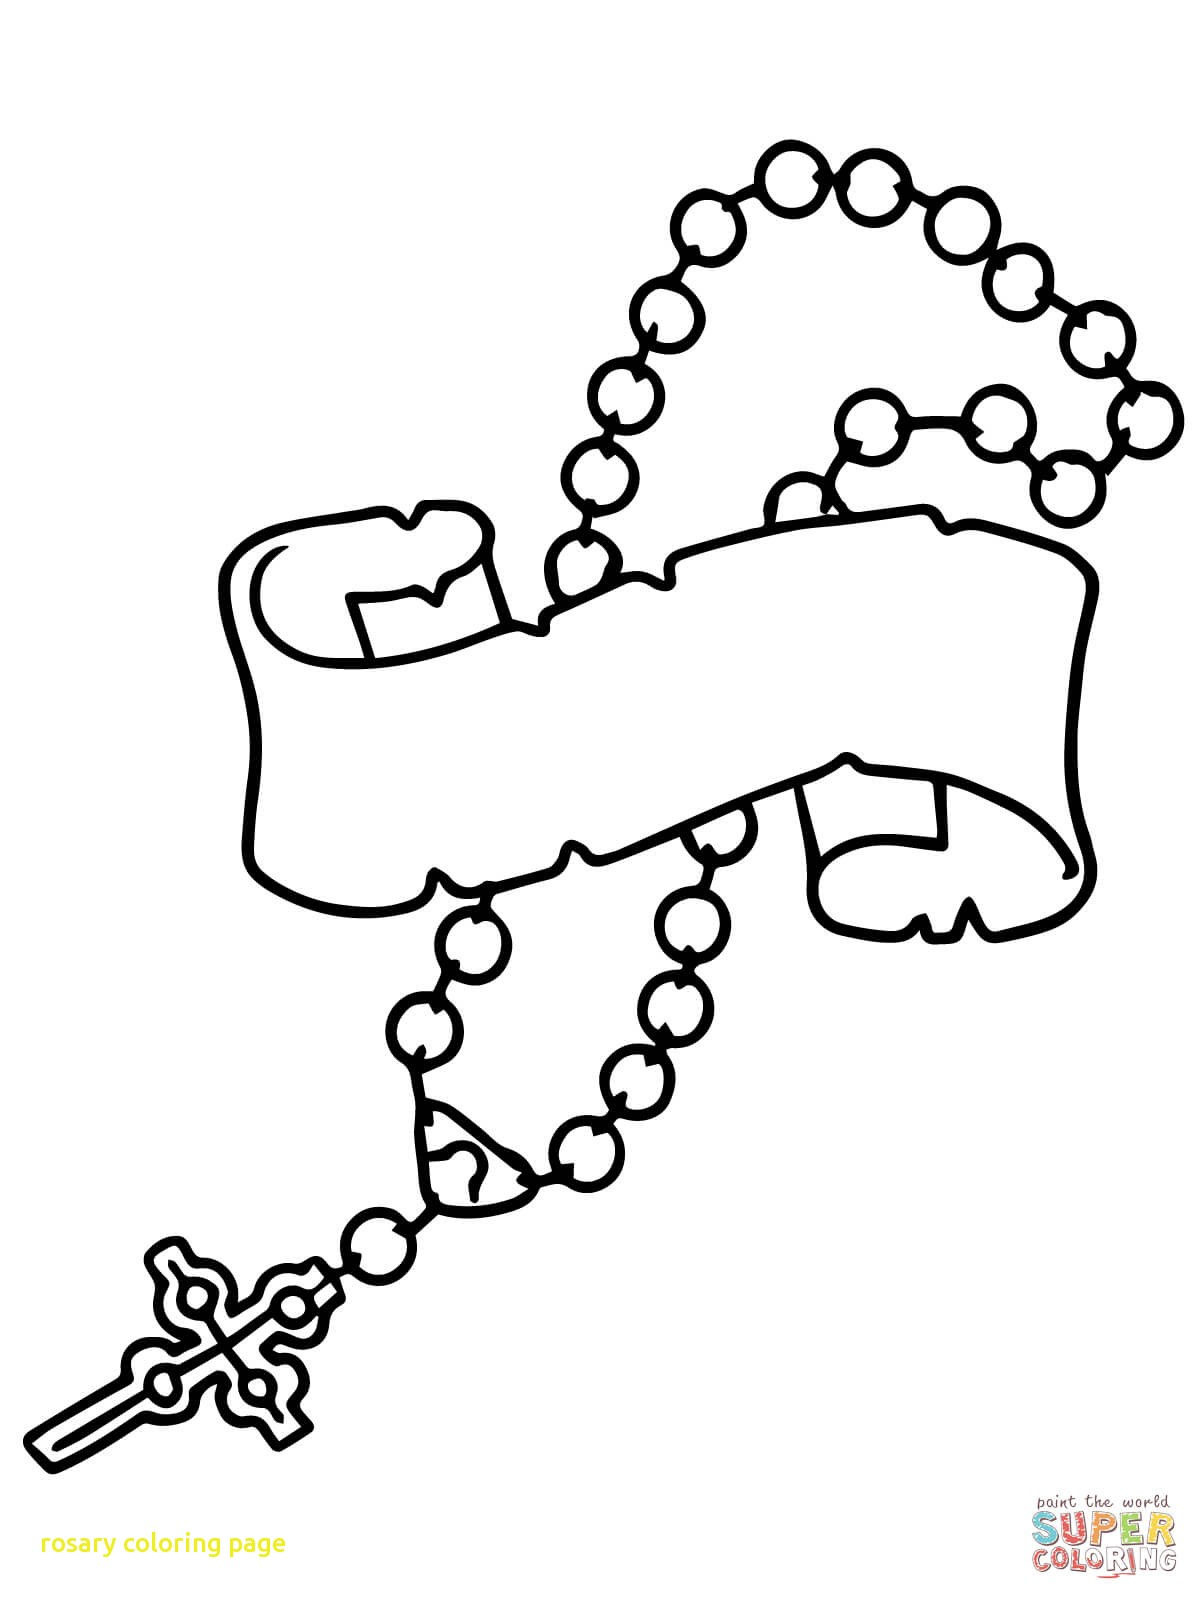 1200x1600 Rosary Coloring Page With Rosary Beads Coloring Page